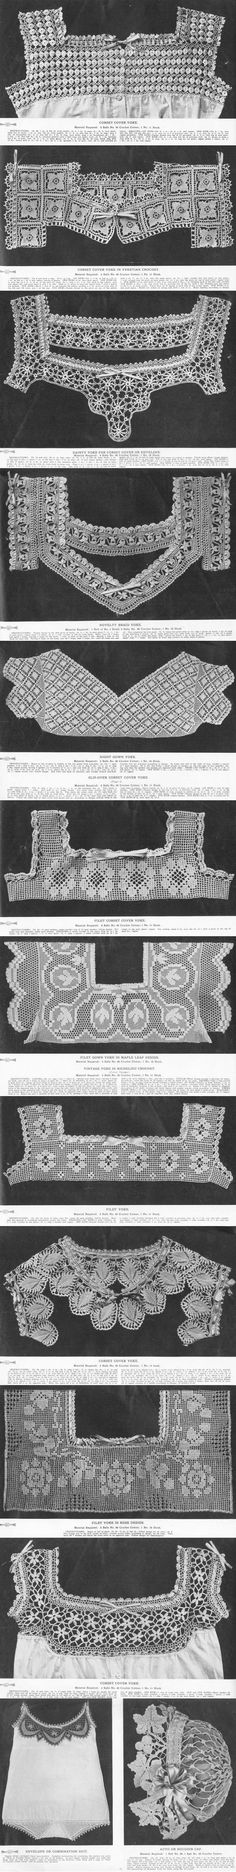 The Princess Yoke Book (1916) contains engravings and instructions on making these beautiful yokes. Read it on the DIY Collaboratorium's Crochet Library page.